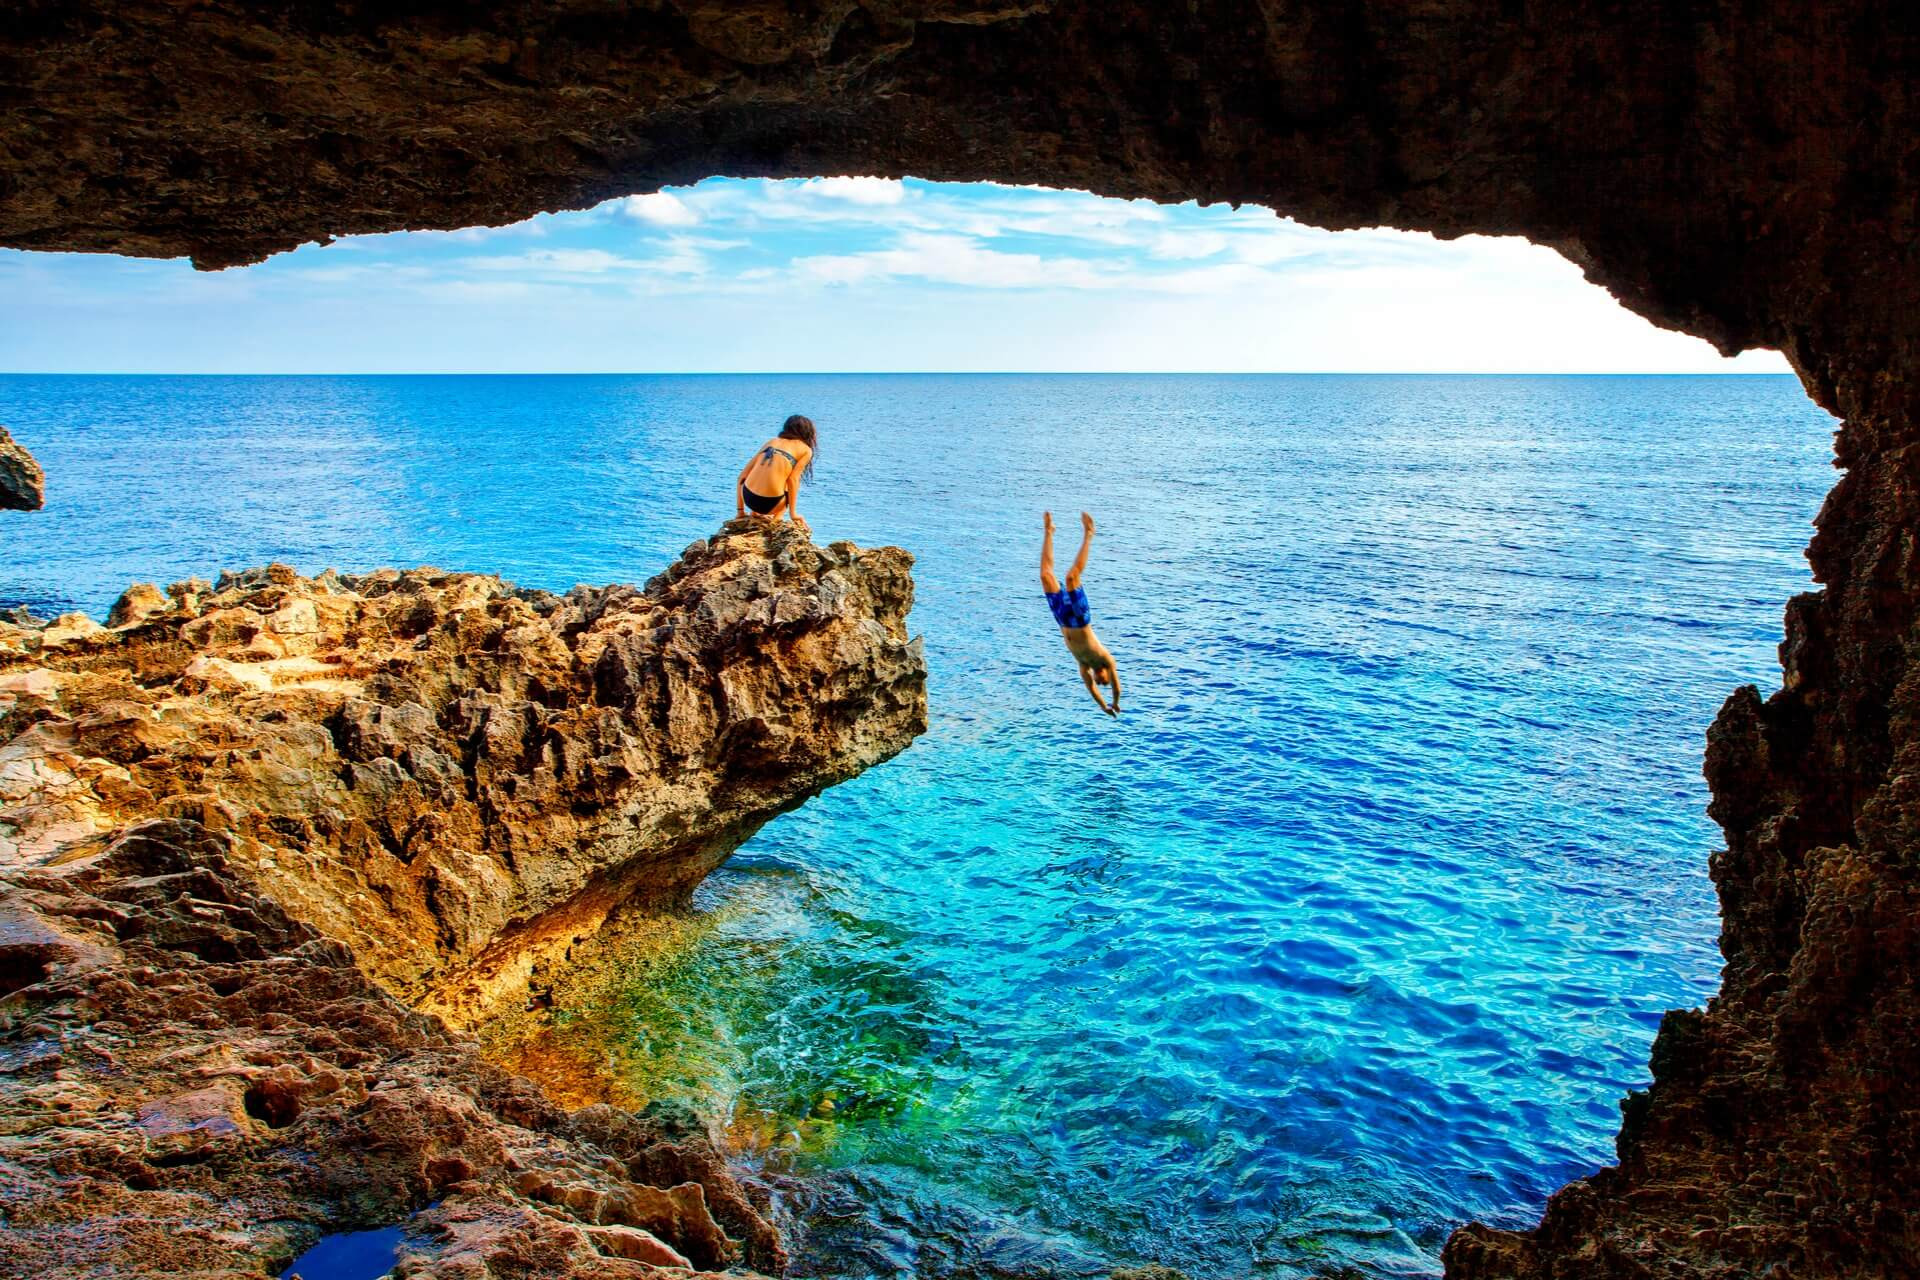 Sea Cave - Cape Greko of Ayia Napa and Protaras